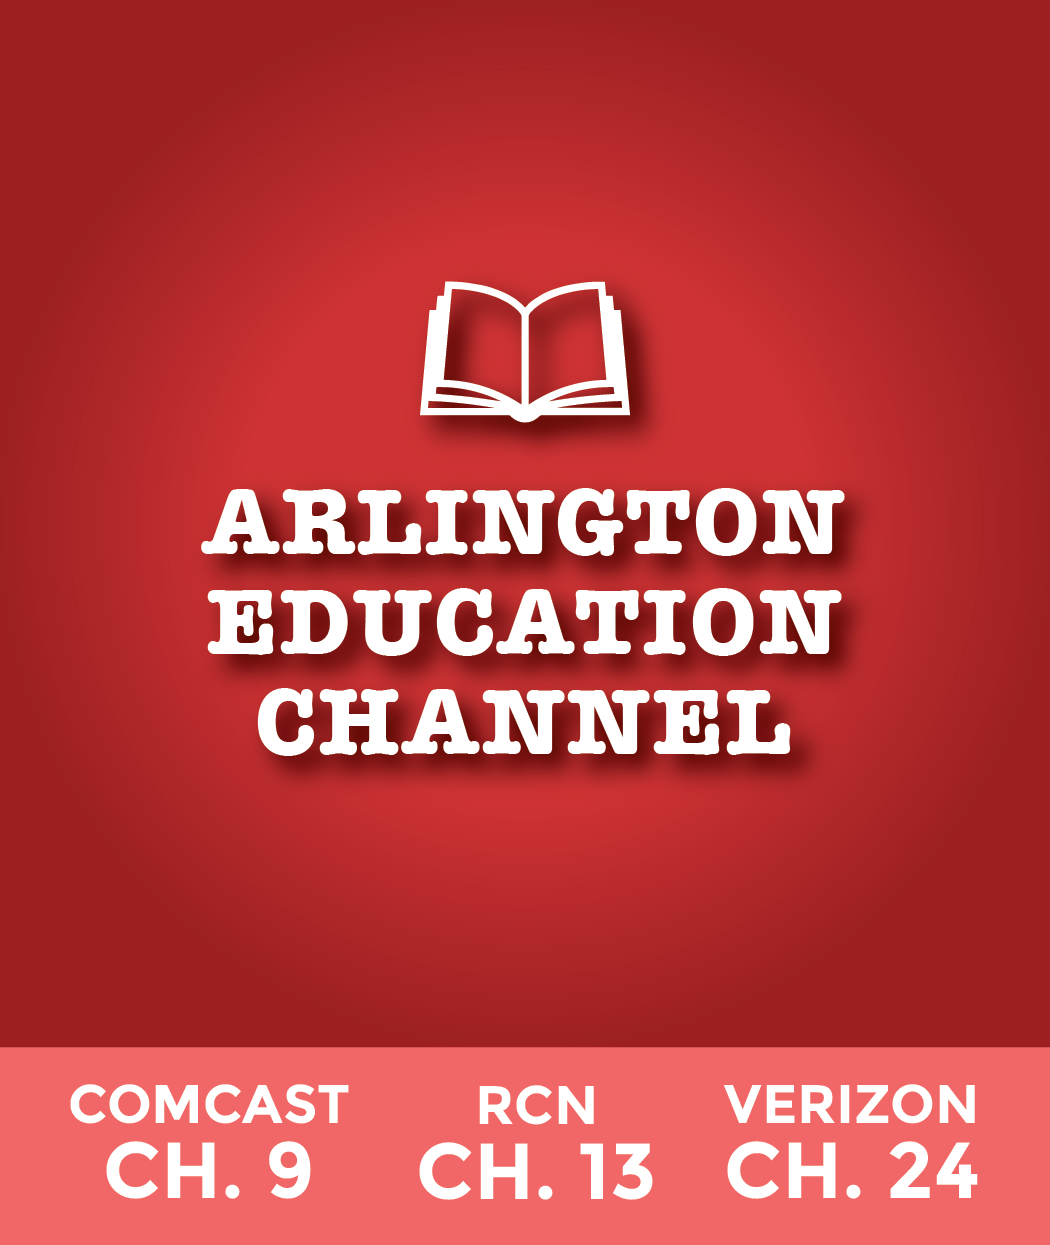 Arlington Education Channel ACMi